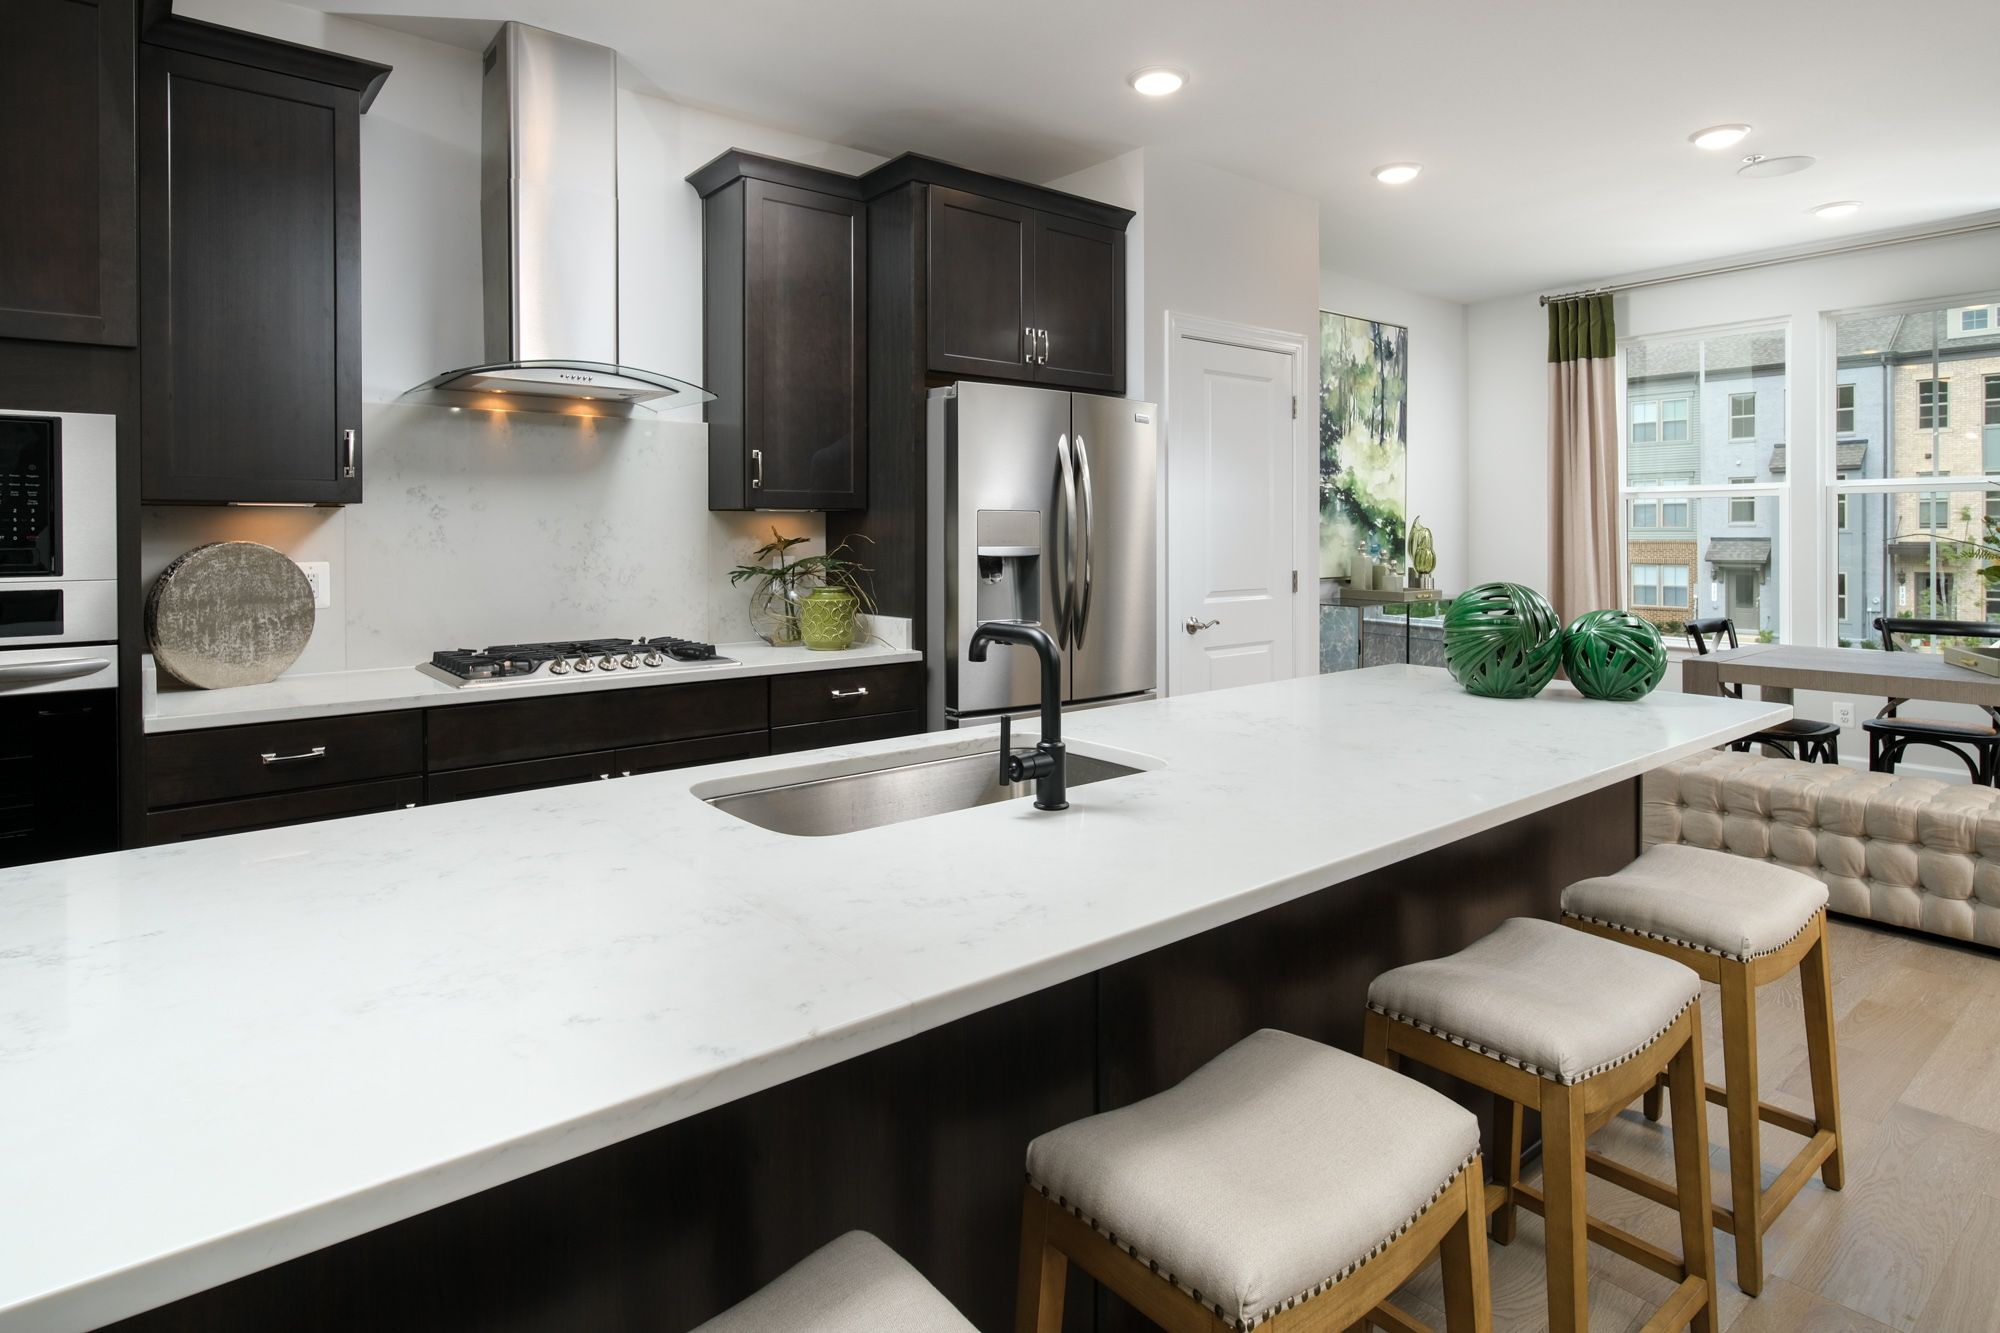 Kitchen featured in the Everett By Stanley Martin Homes in Baltimore, MD